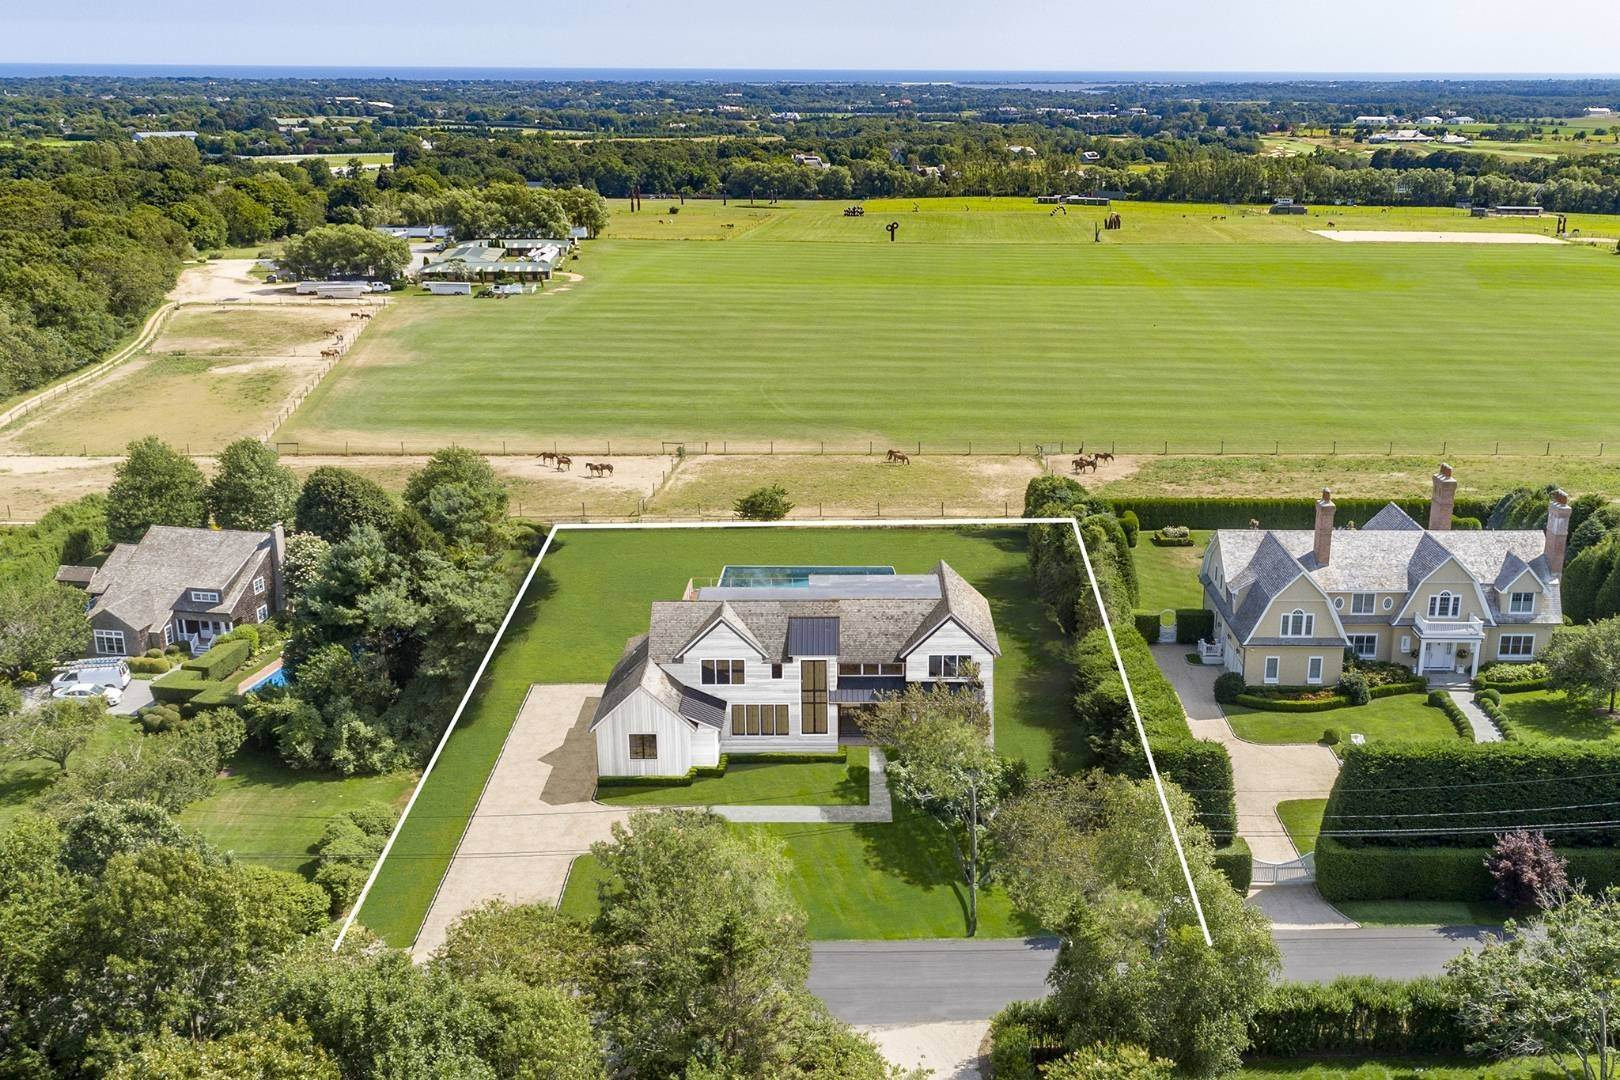 Single Family Home at Bridgehampton New Construction Adjacent To Reserve 365 Lopers Path, Bridgehampton, NY 11976